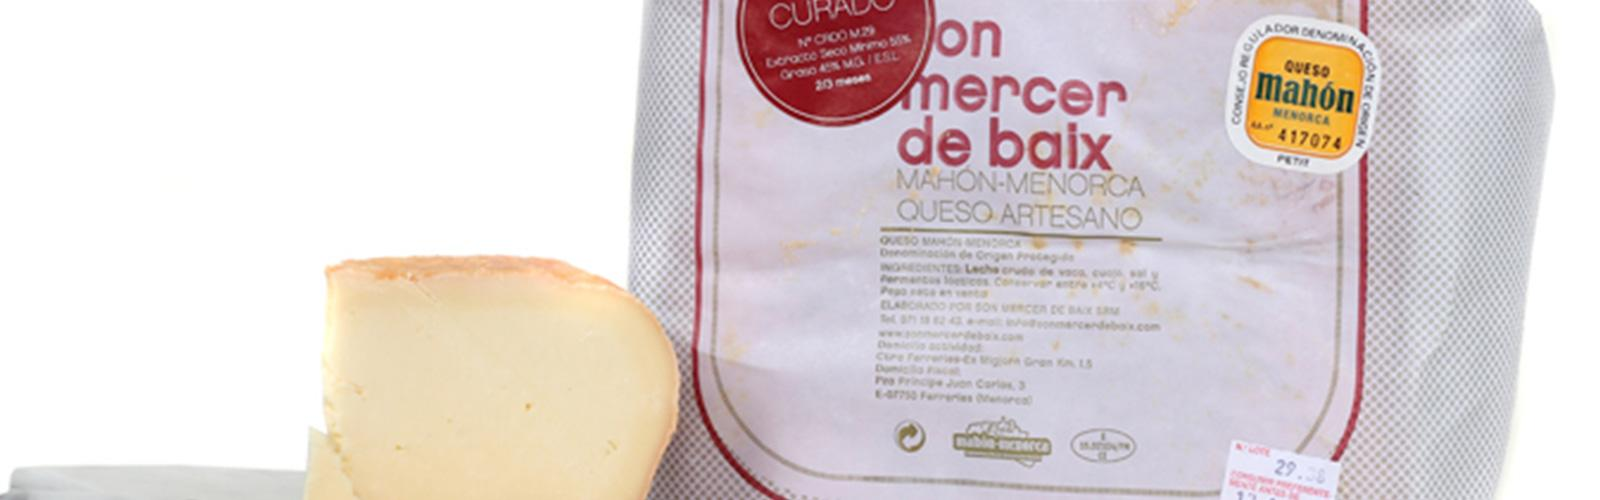 Son Mercer de Baix Mahon Semi Cured Cheese